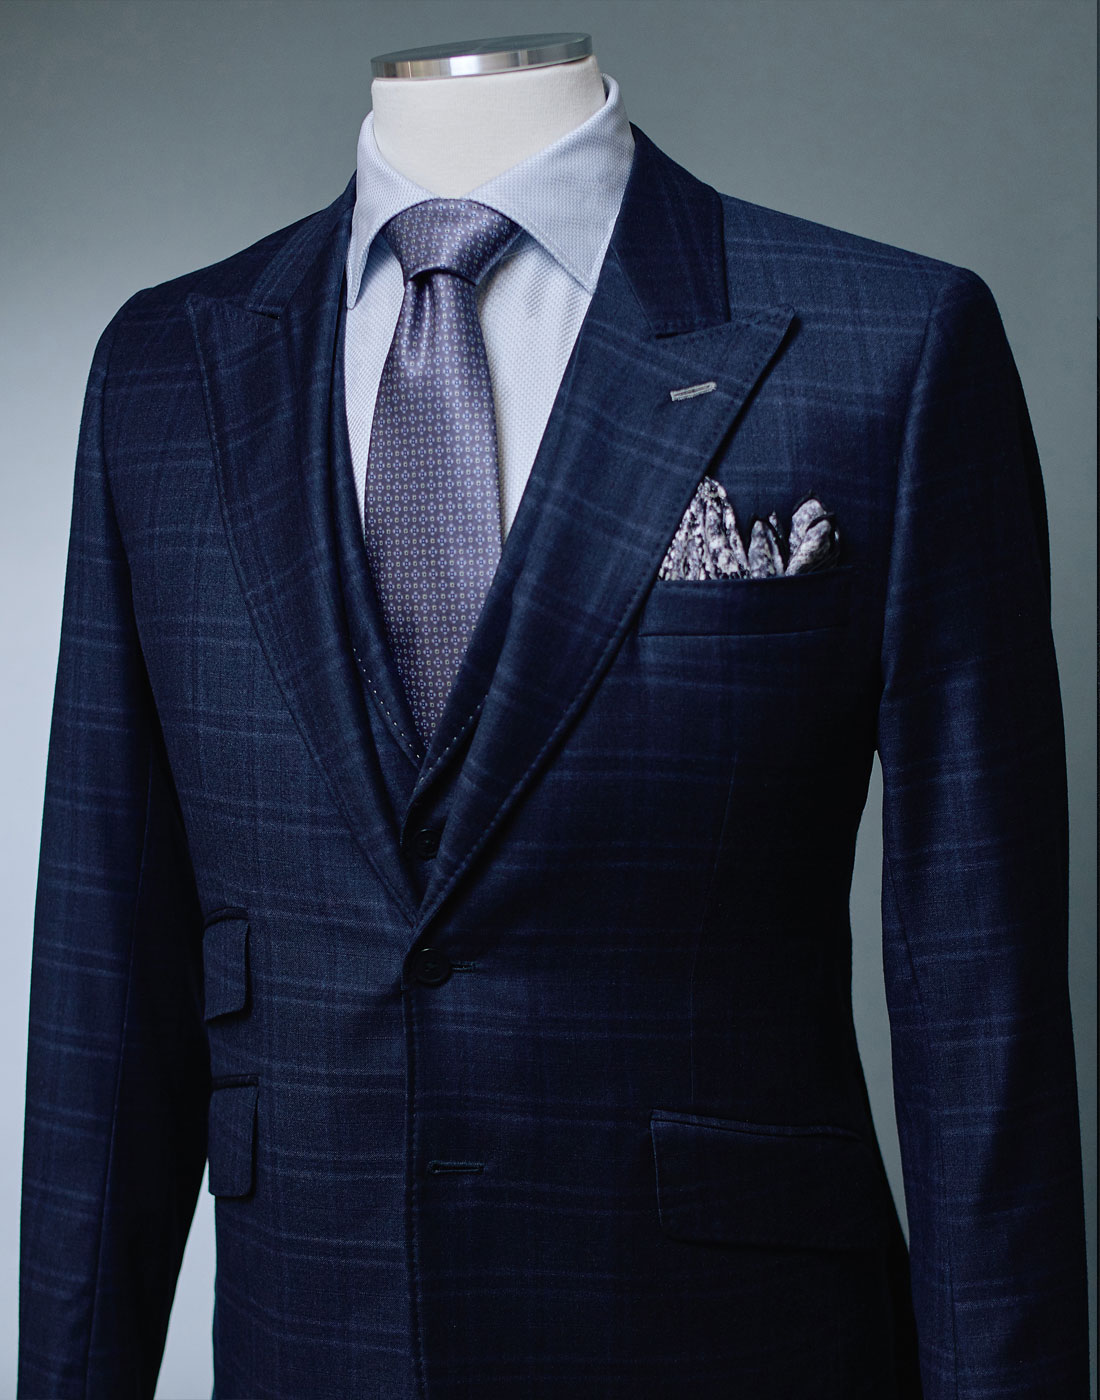 Men's bespoke plaid suit jacket